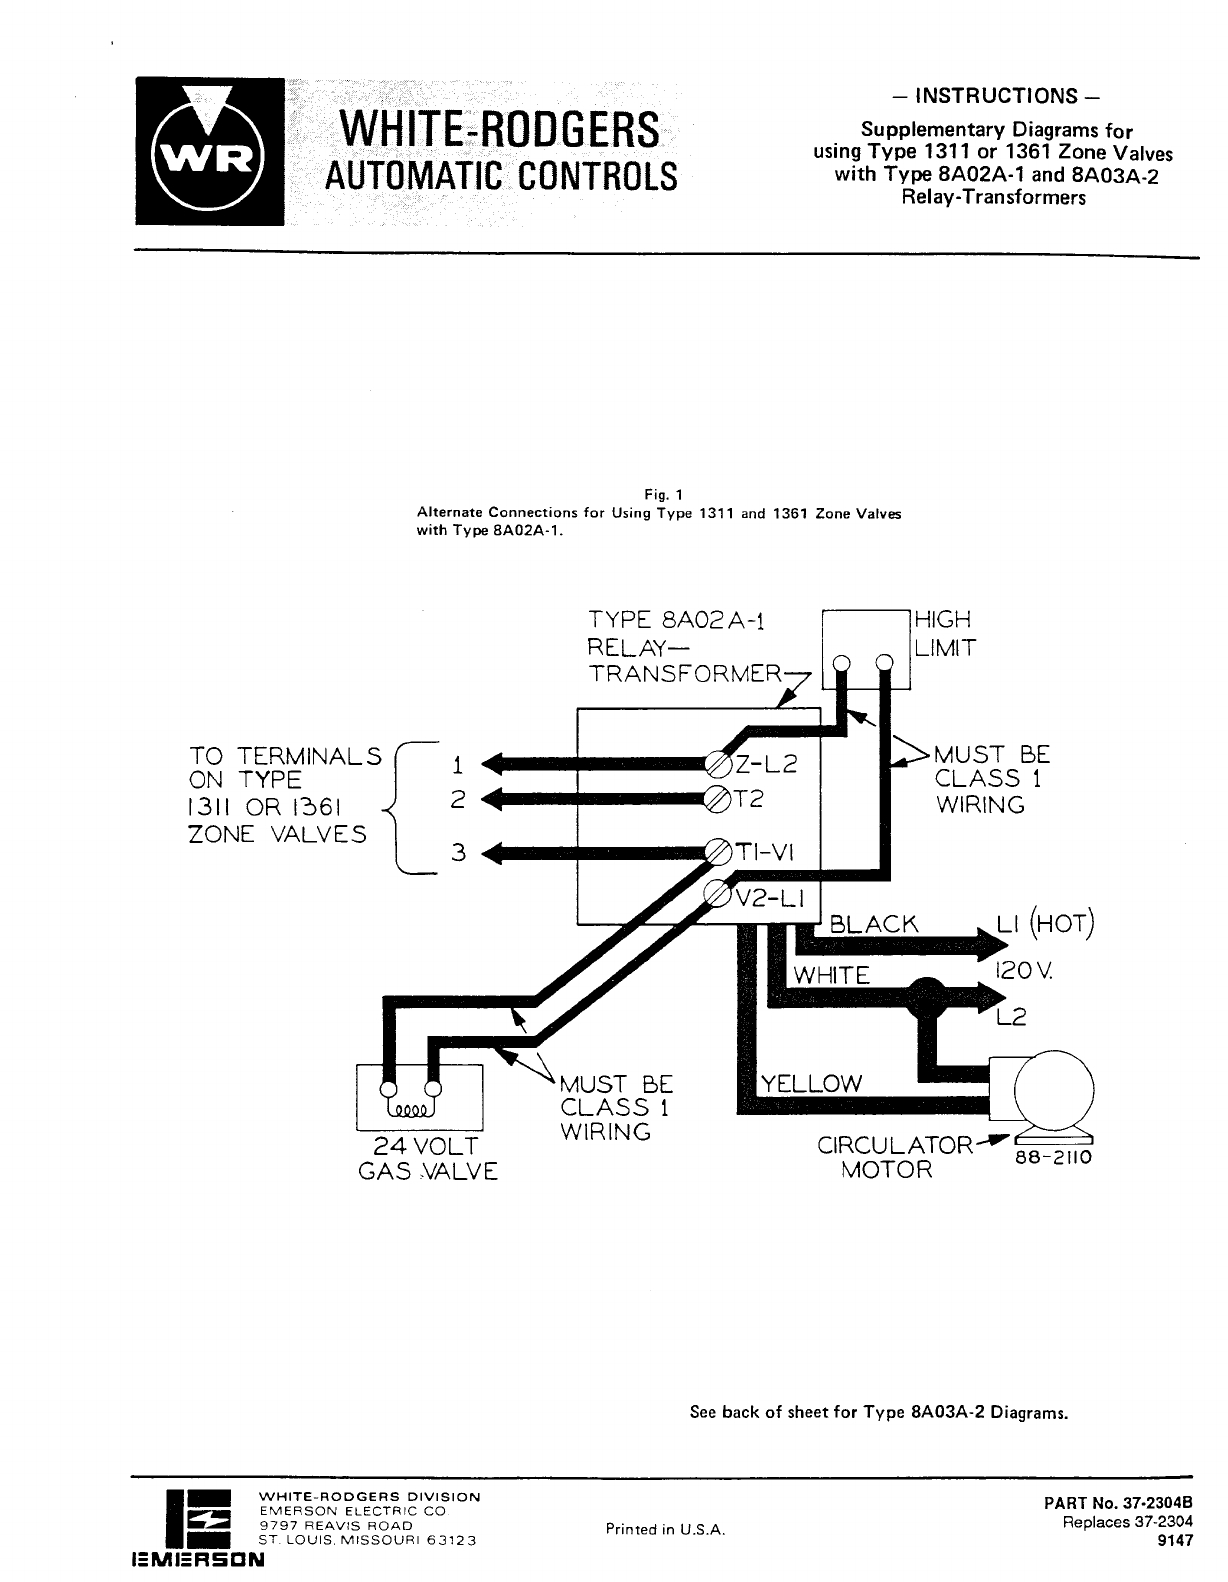 white rodgers zone valve wiring diagram likewise white rodgers rh abetter pw